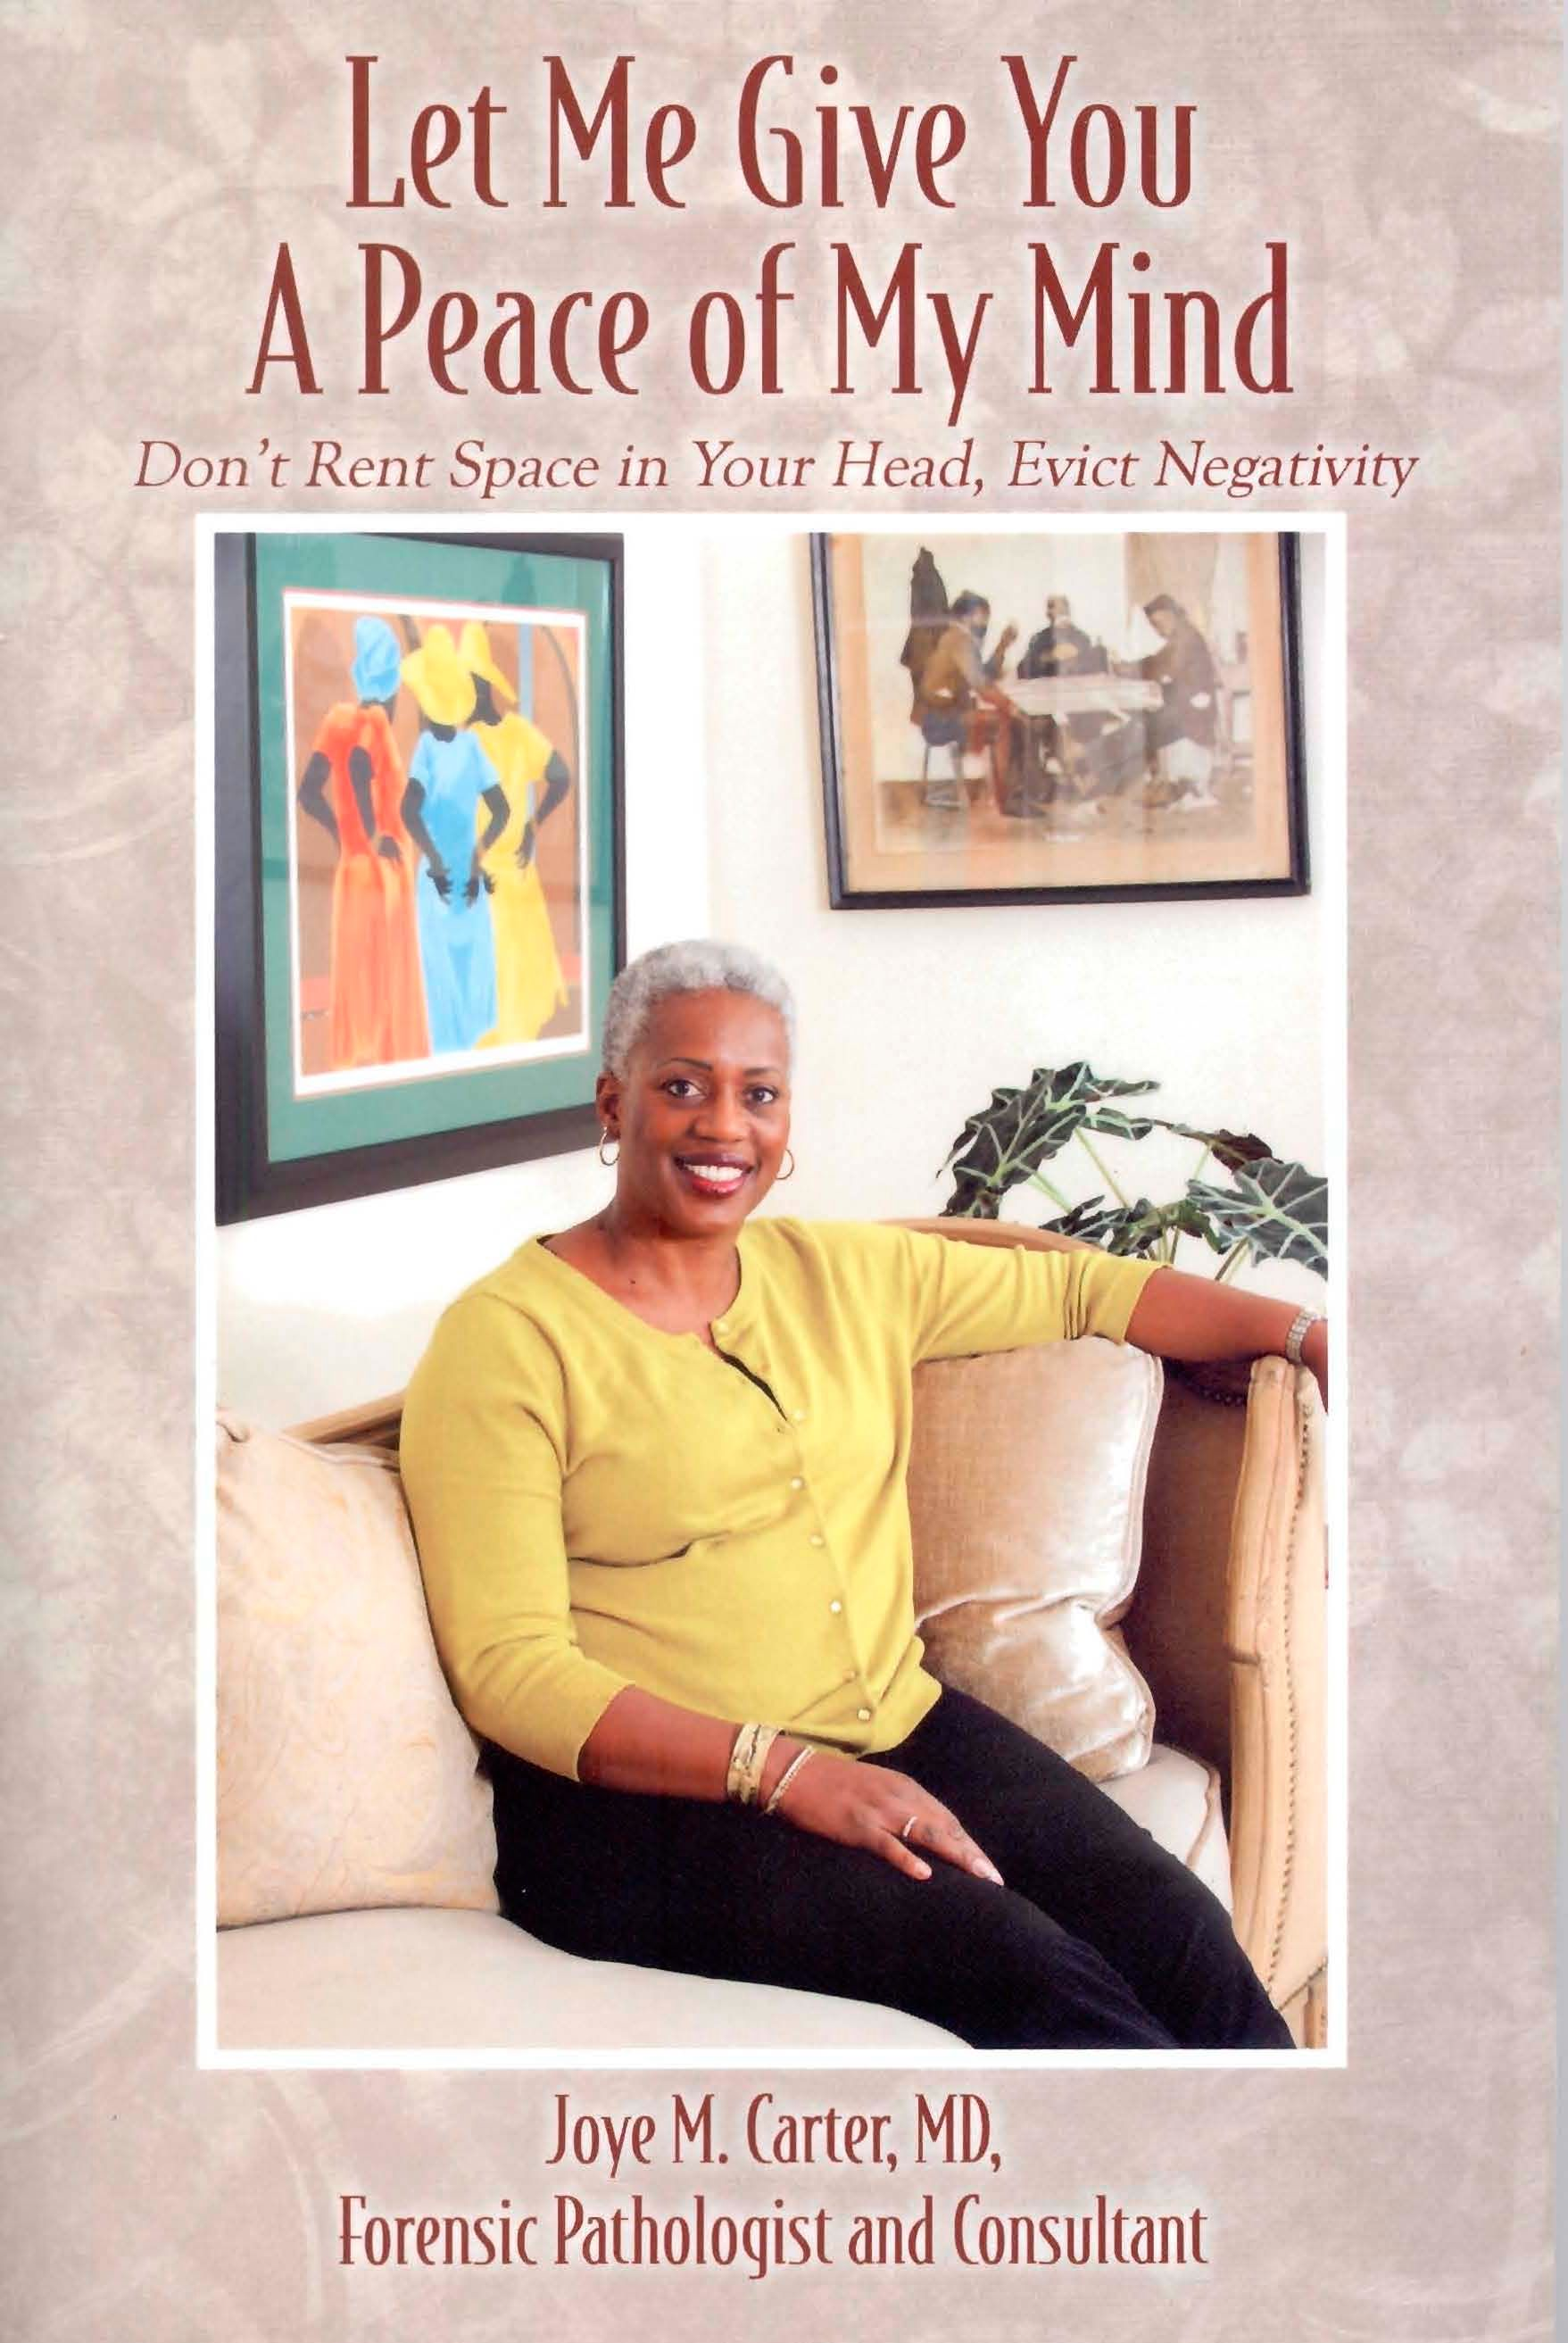 DR. JOYE M. CARTER PUBLISHES INSPIRATIONAL THIRD BOOK